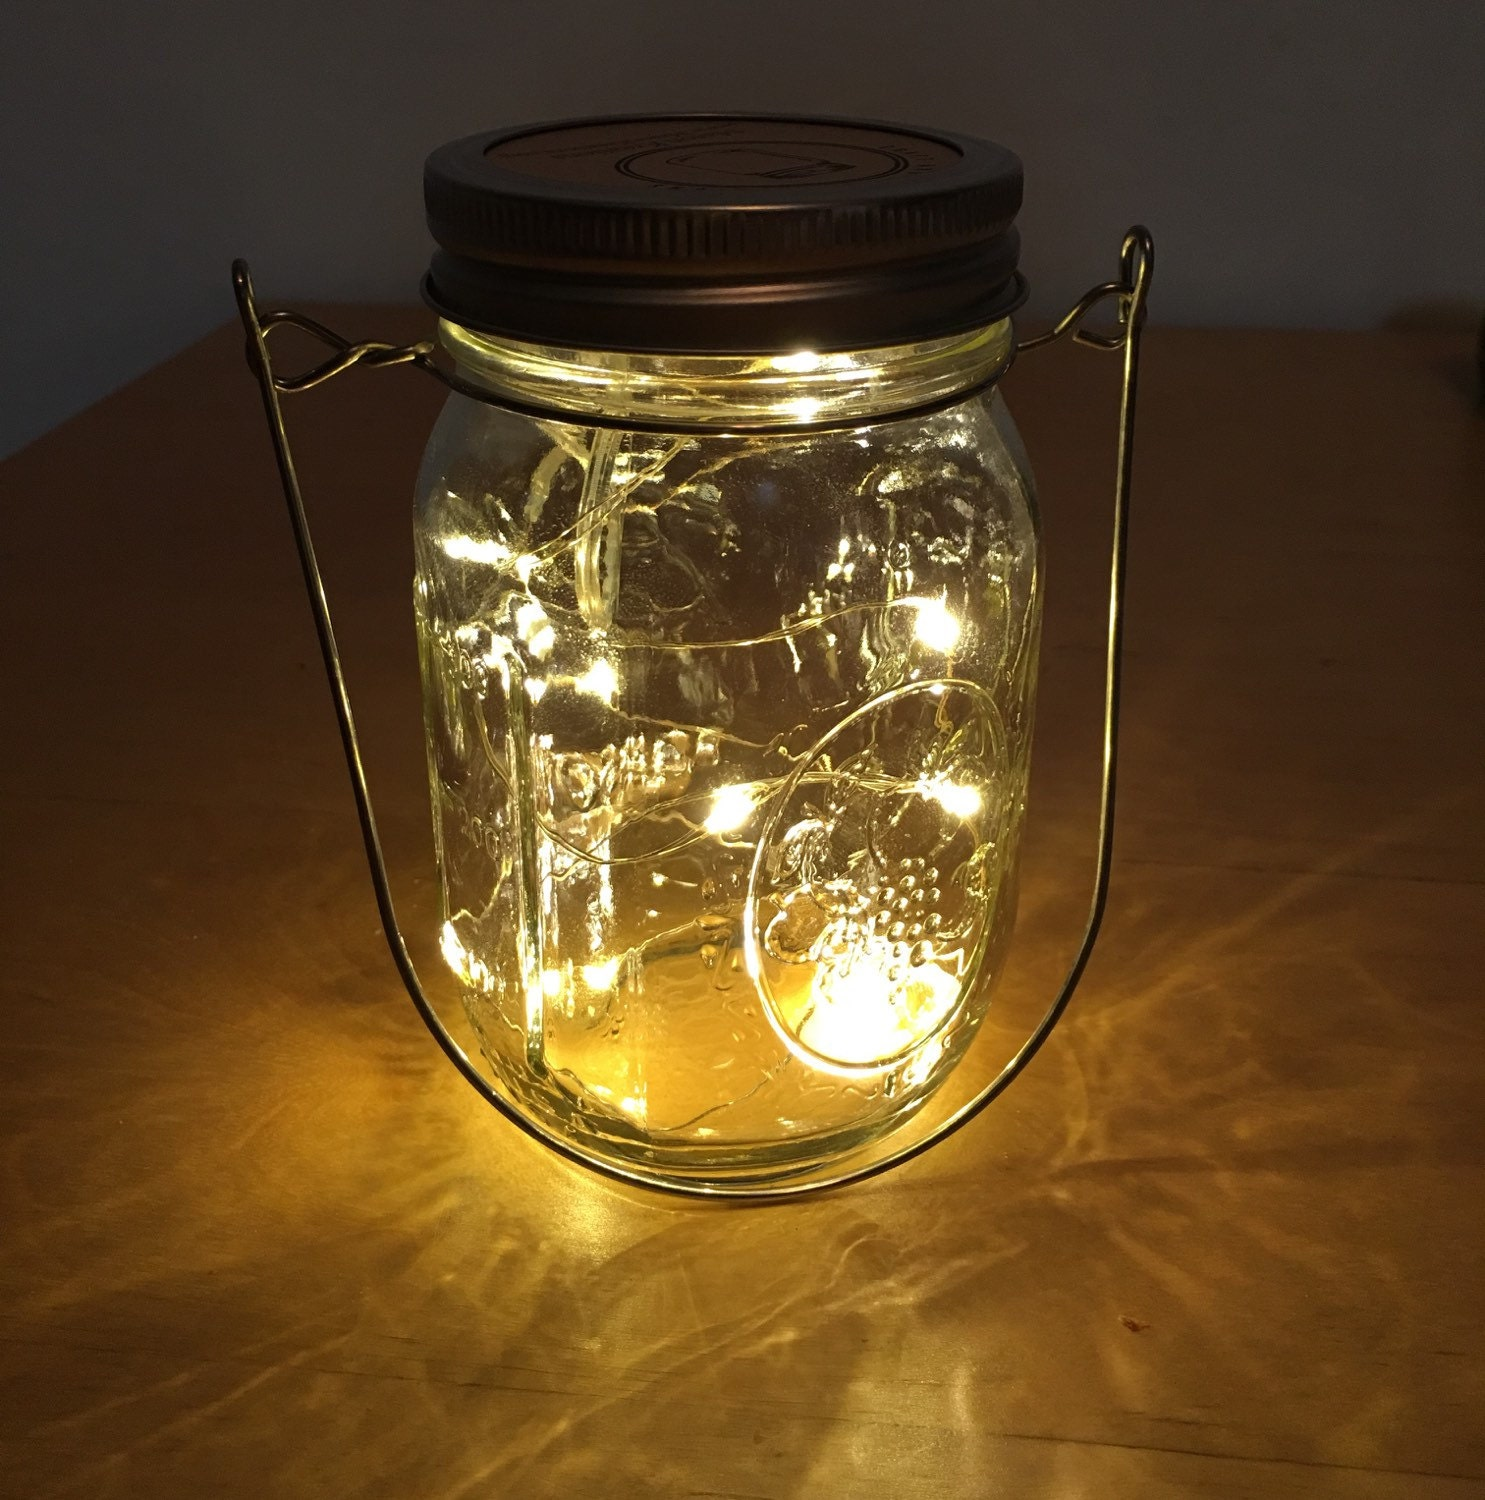 Wire Hanger Firefly Lights With Mason Jar Rustic Wedding